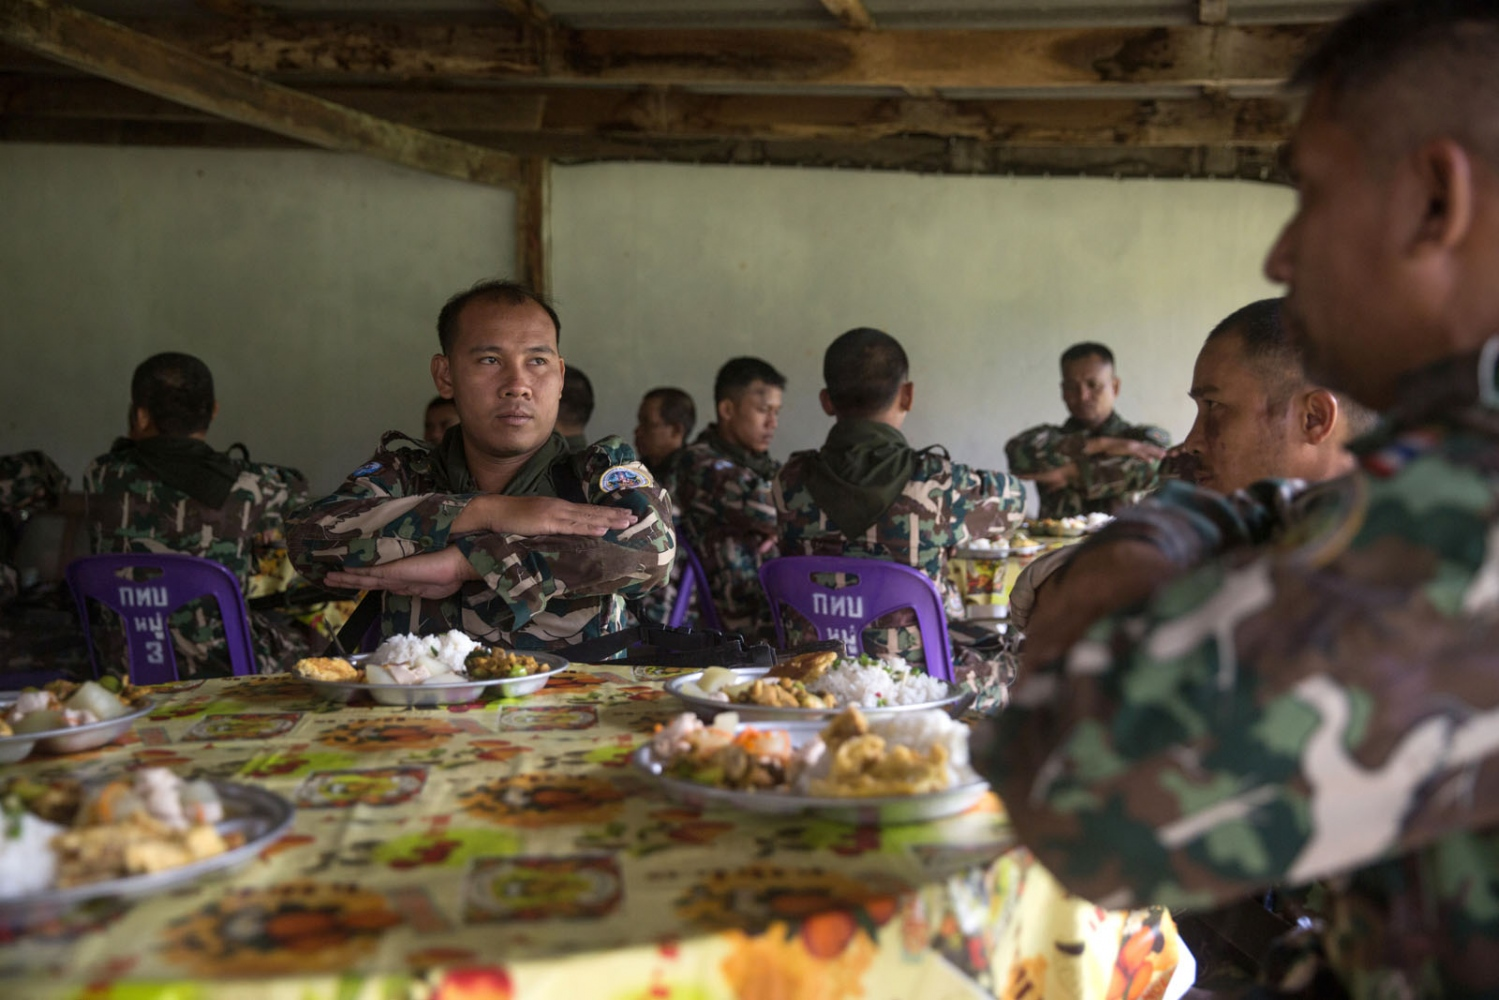 Thai forest rangers must wait for instructions given by their superiors before they can eat during a week-long training course. Ta Praya National Park, Sa Kaew Province - September 2018